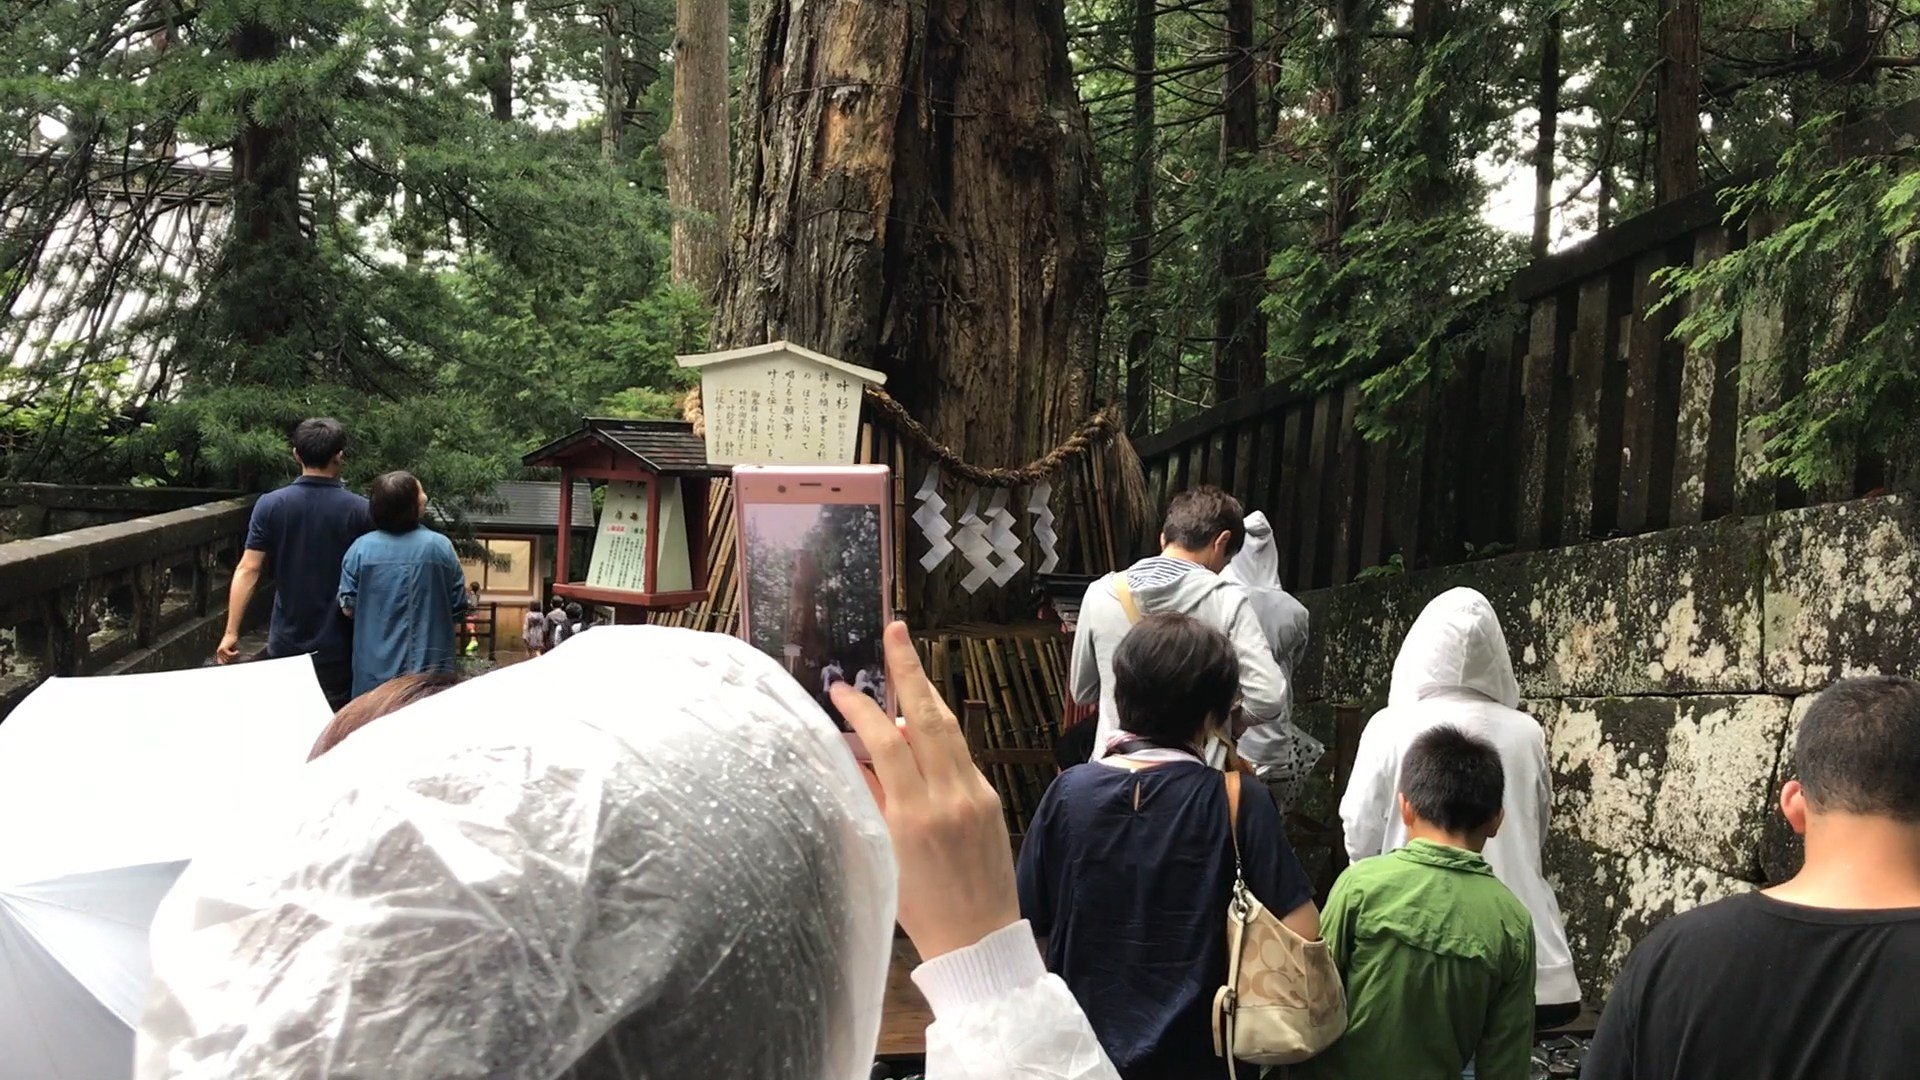 Sacred Tree - Nikko Toshogu Shrine Japan Review Blog Guide List View Video 2017 ⛩ 🏯 🌸